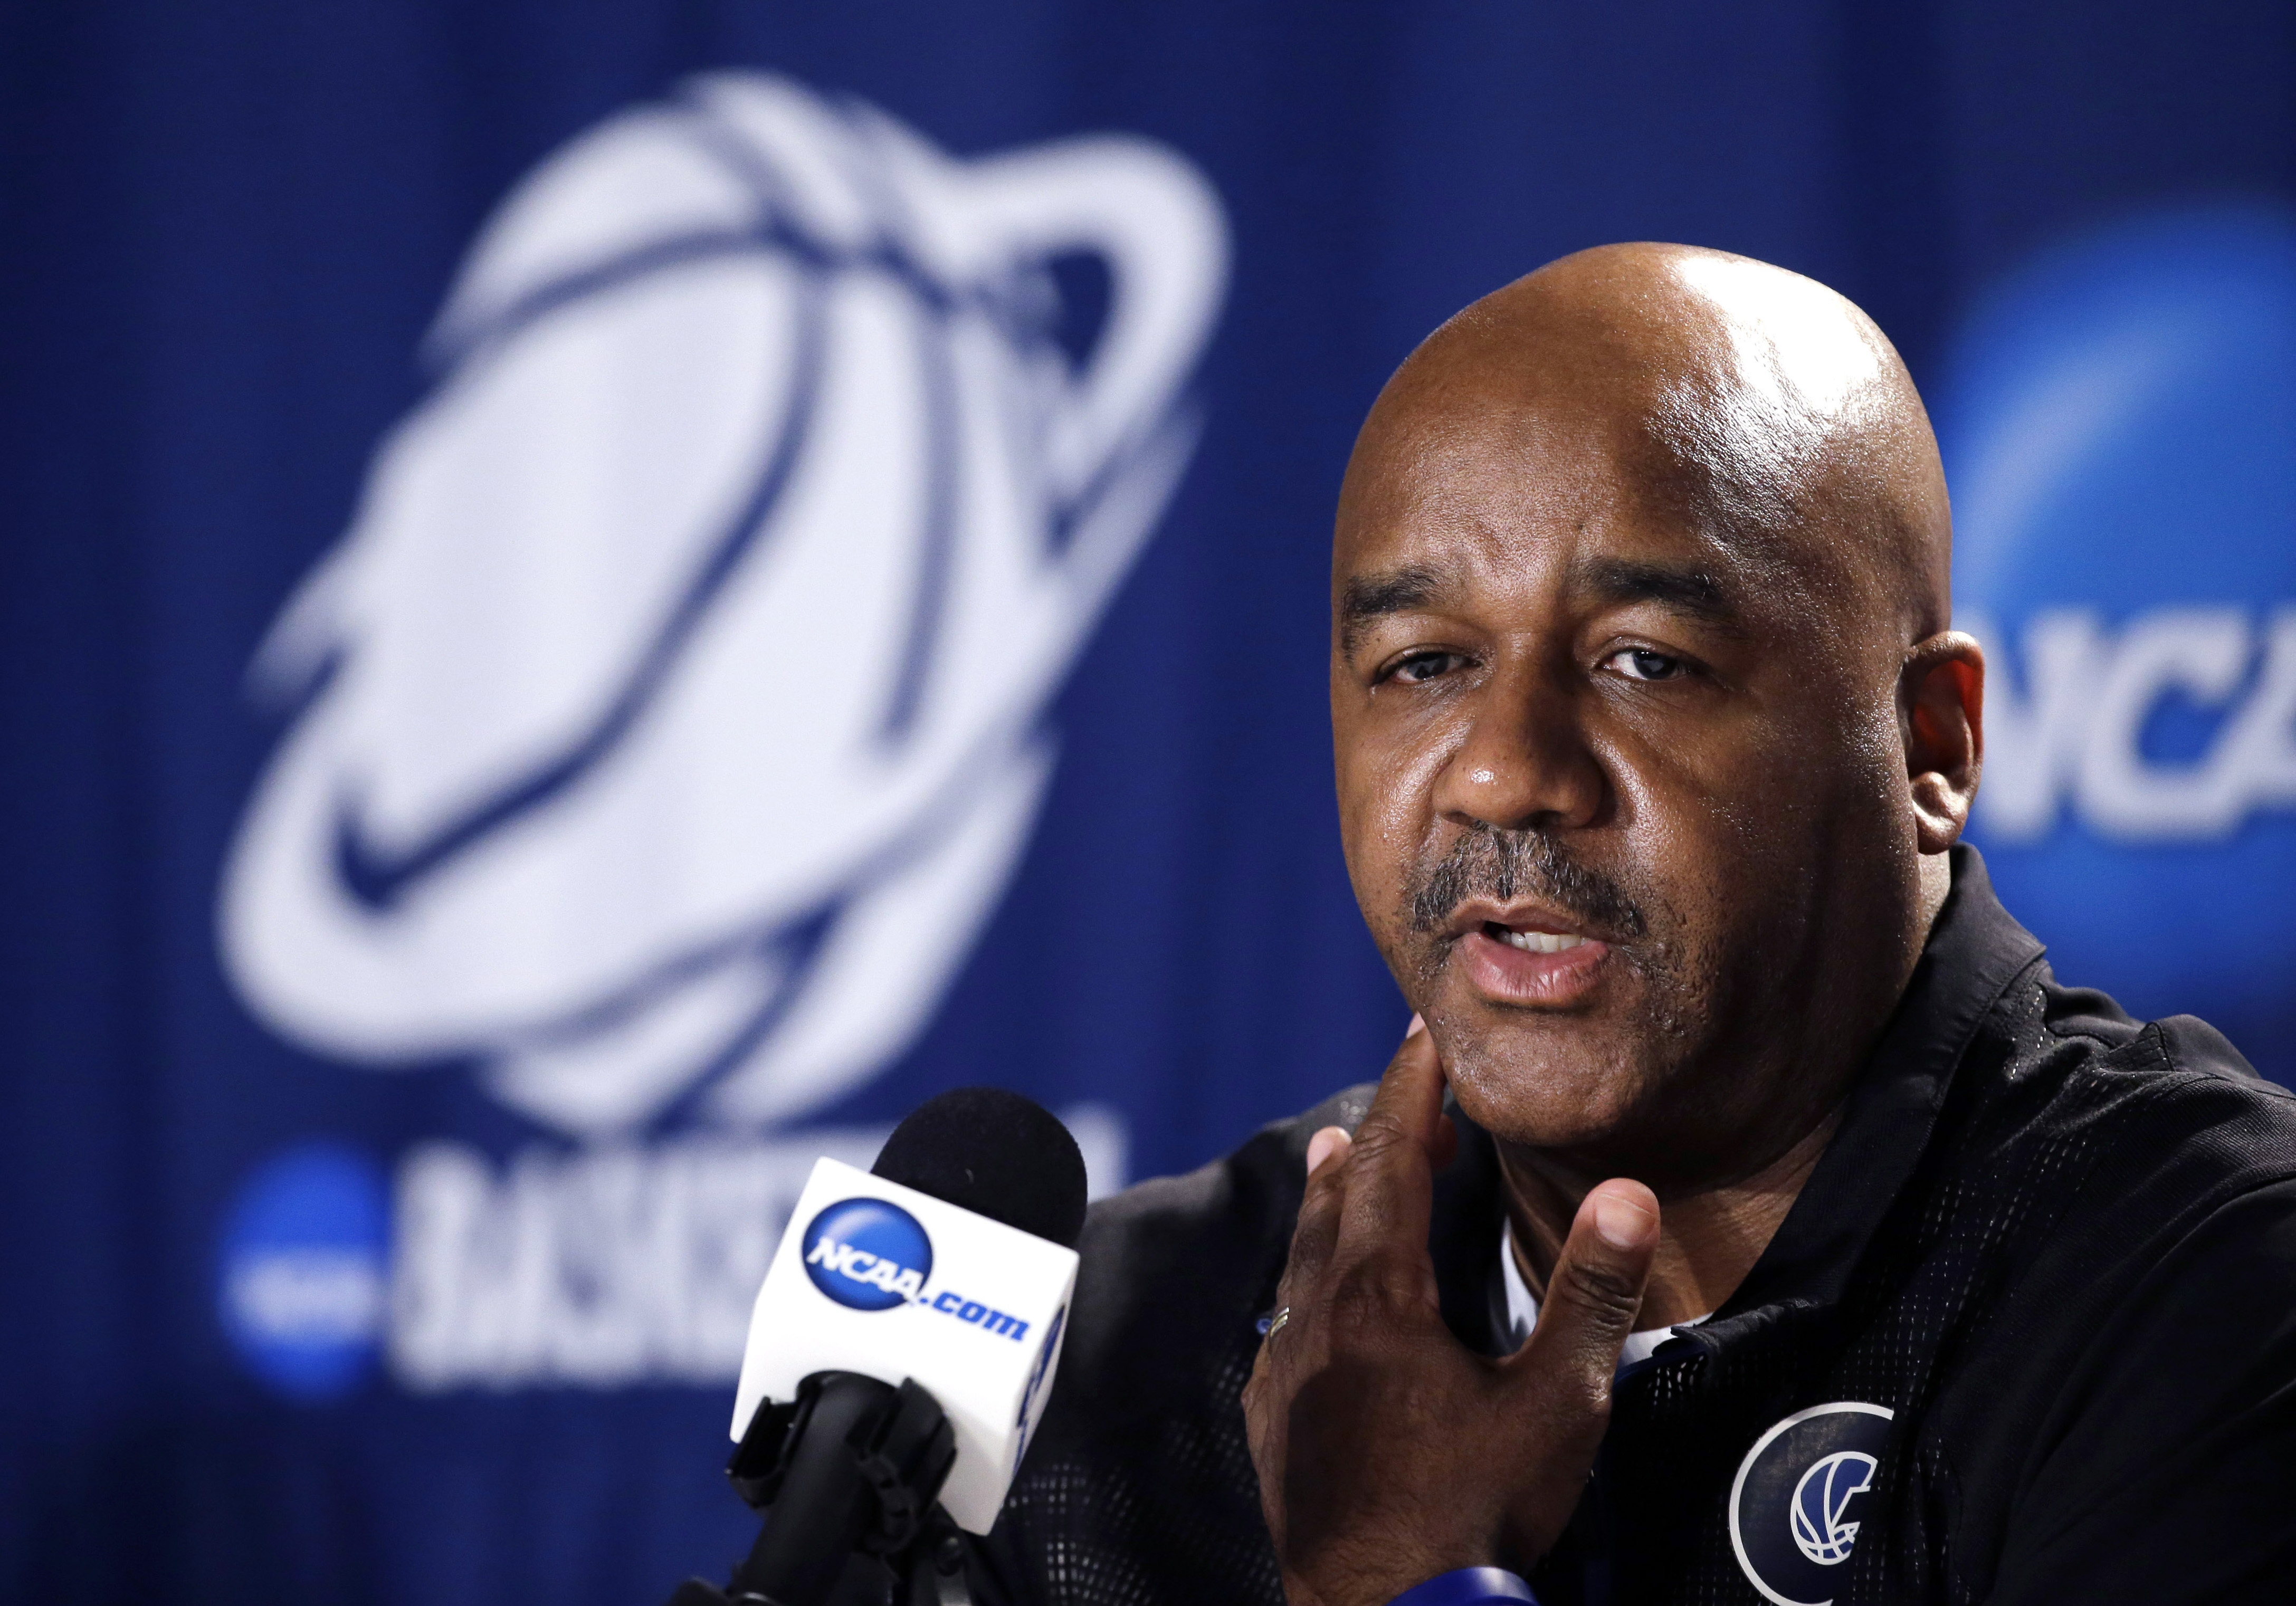 FILE - In this March 20, 2015, file phot, Georgetown coach John Thompson III speaks during a news conference at the NCAA college basketball tournament in Portland, Ore. The National Association For Coaching Equity and Development, a group led by Texas Tec